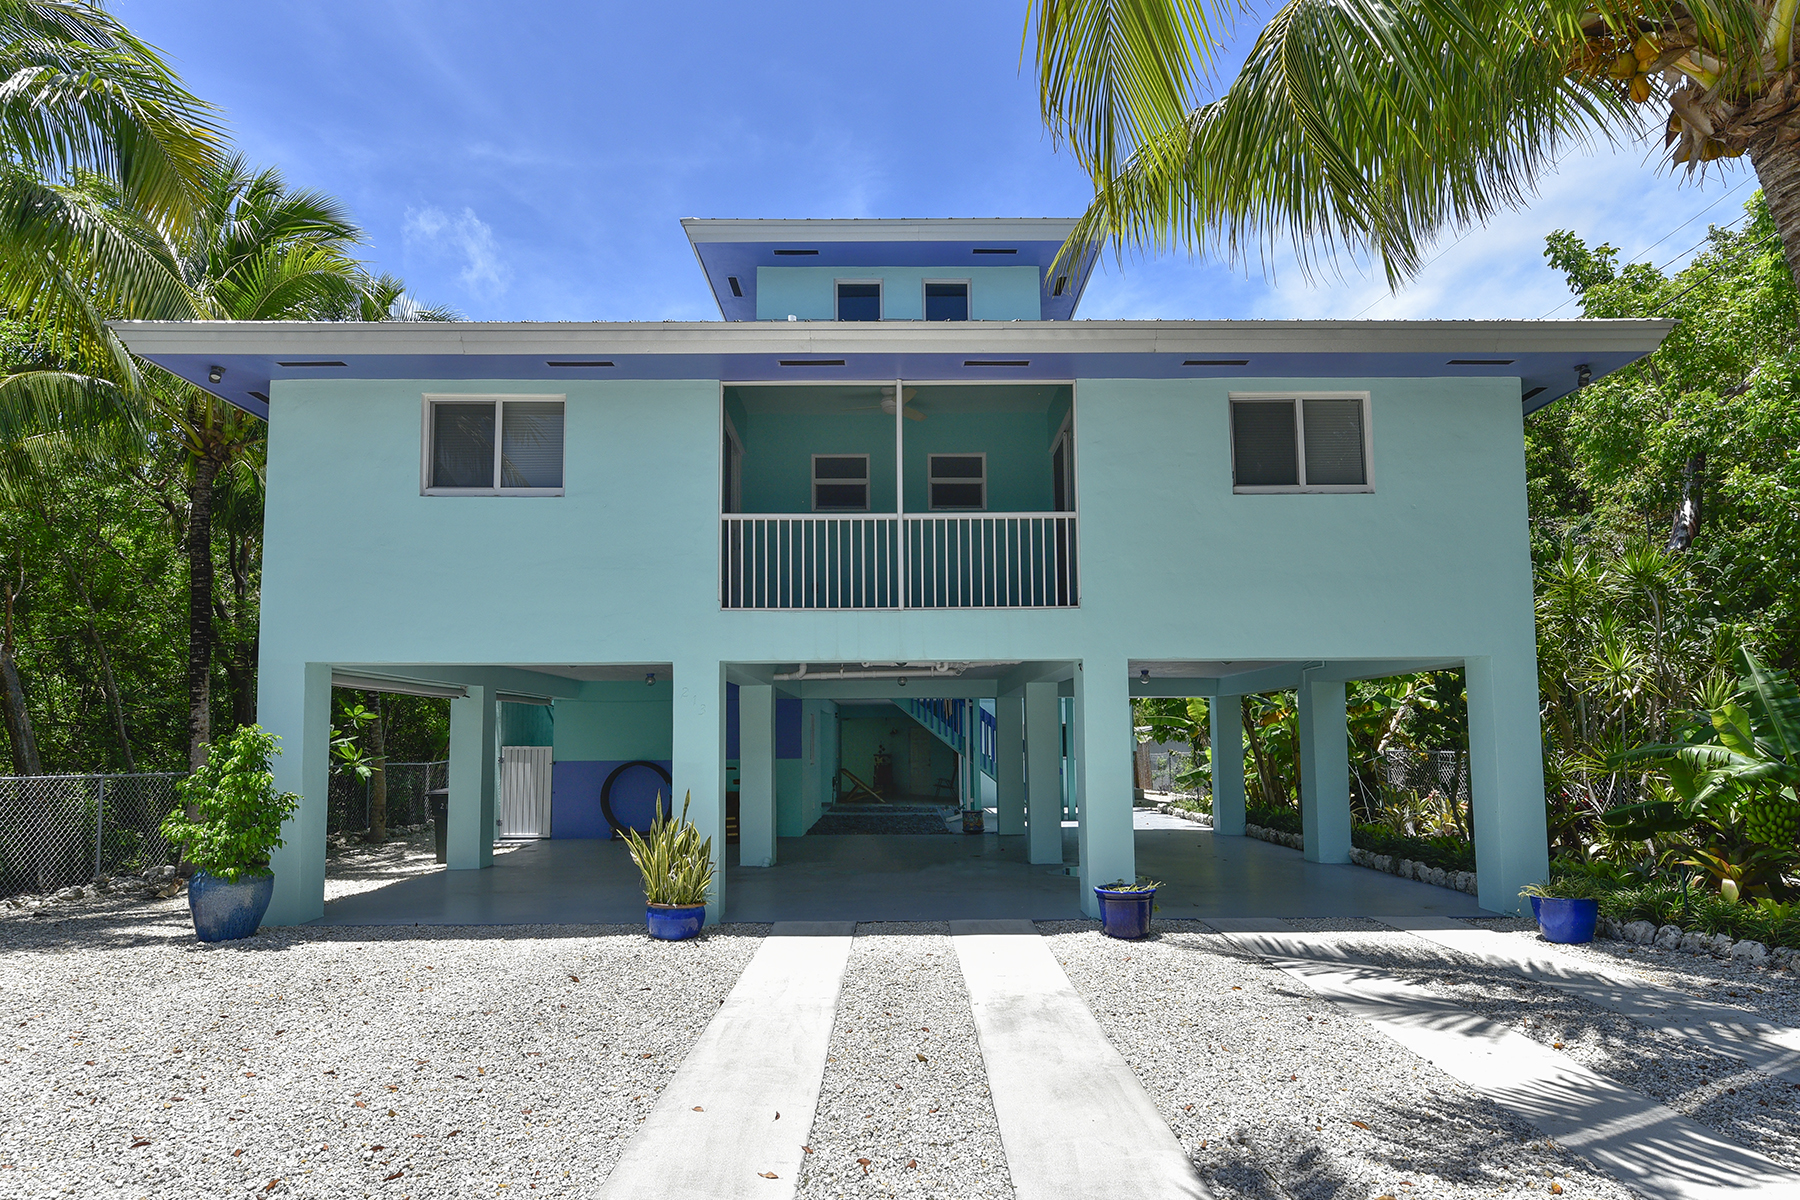 Additional photo for property listing at Desirable Port Largo Location 213 Atlantic Blvd Key Largo, Florida 33037 Stati Uniti